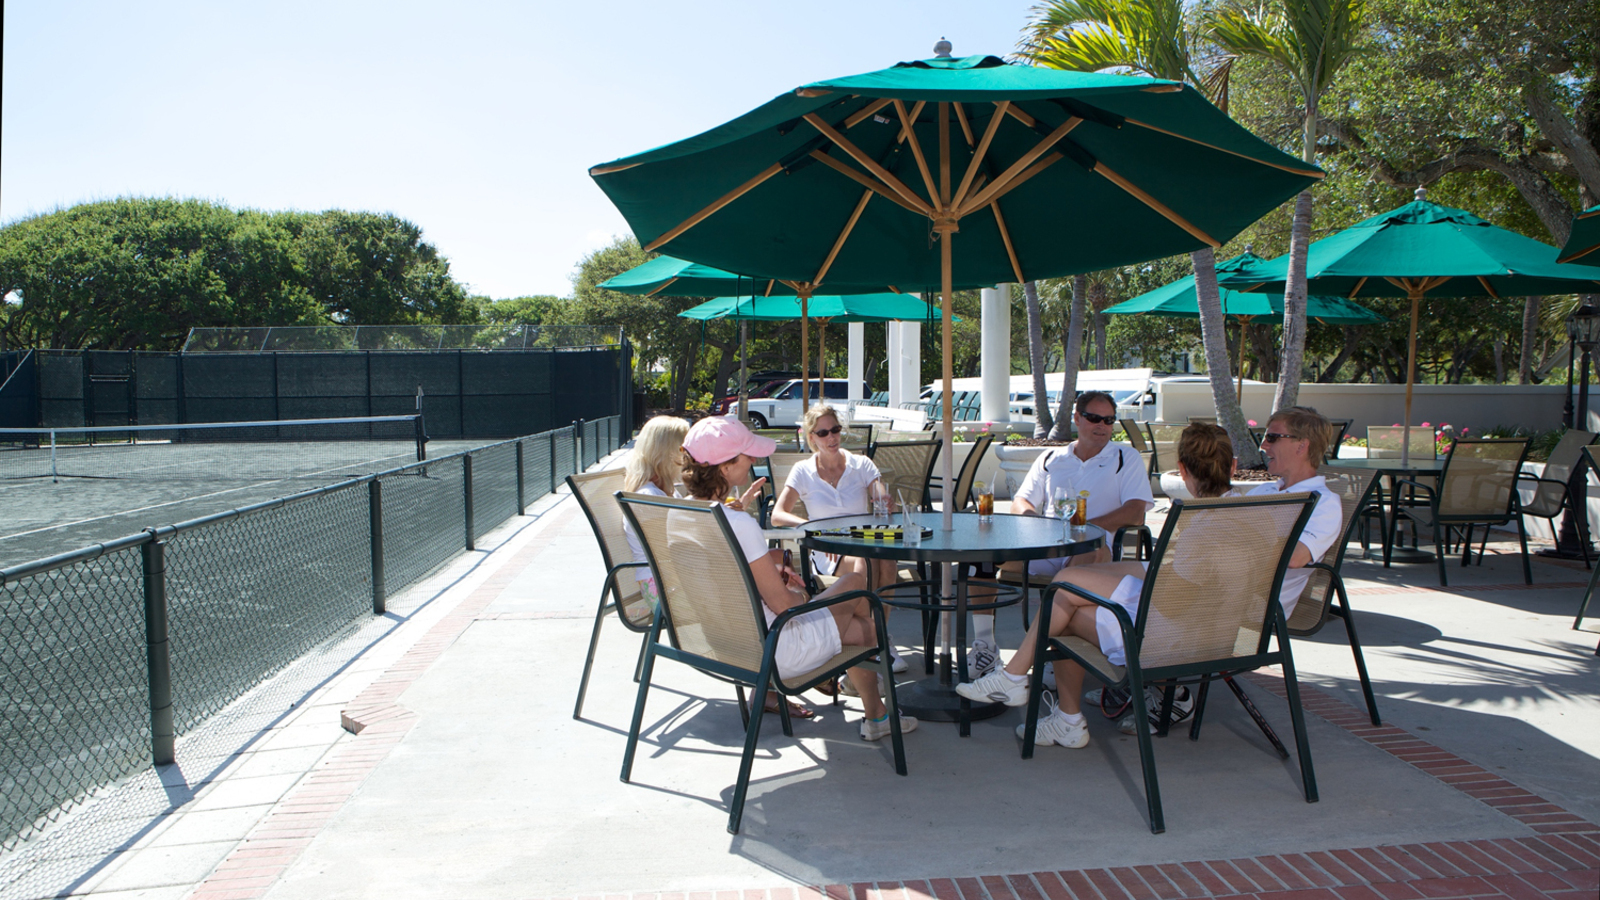 Food & Drink At The John's Island Tennis Club